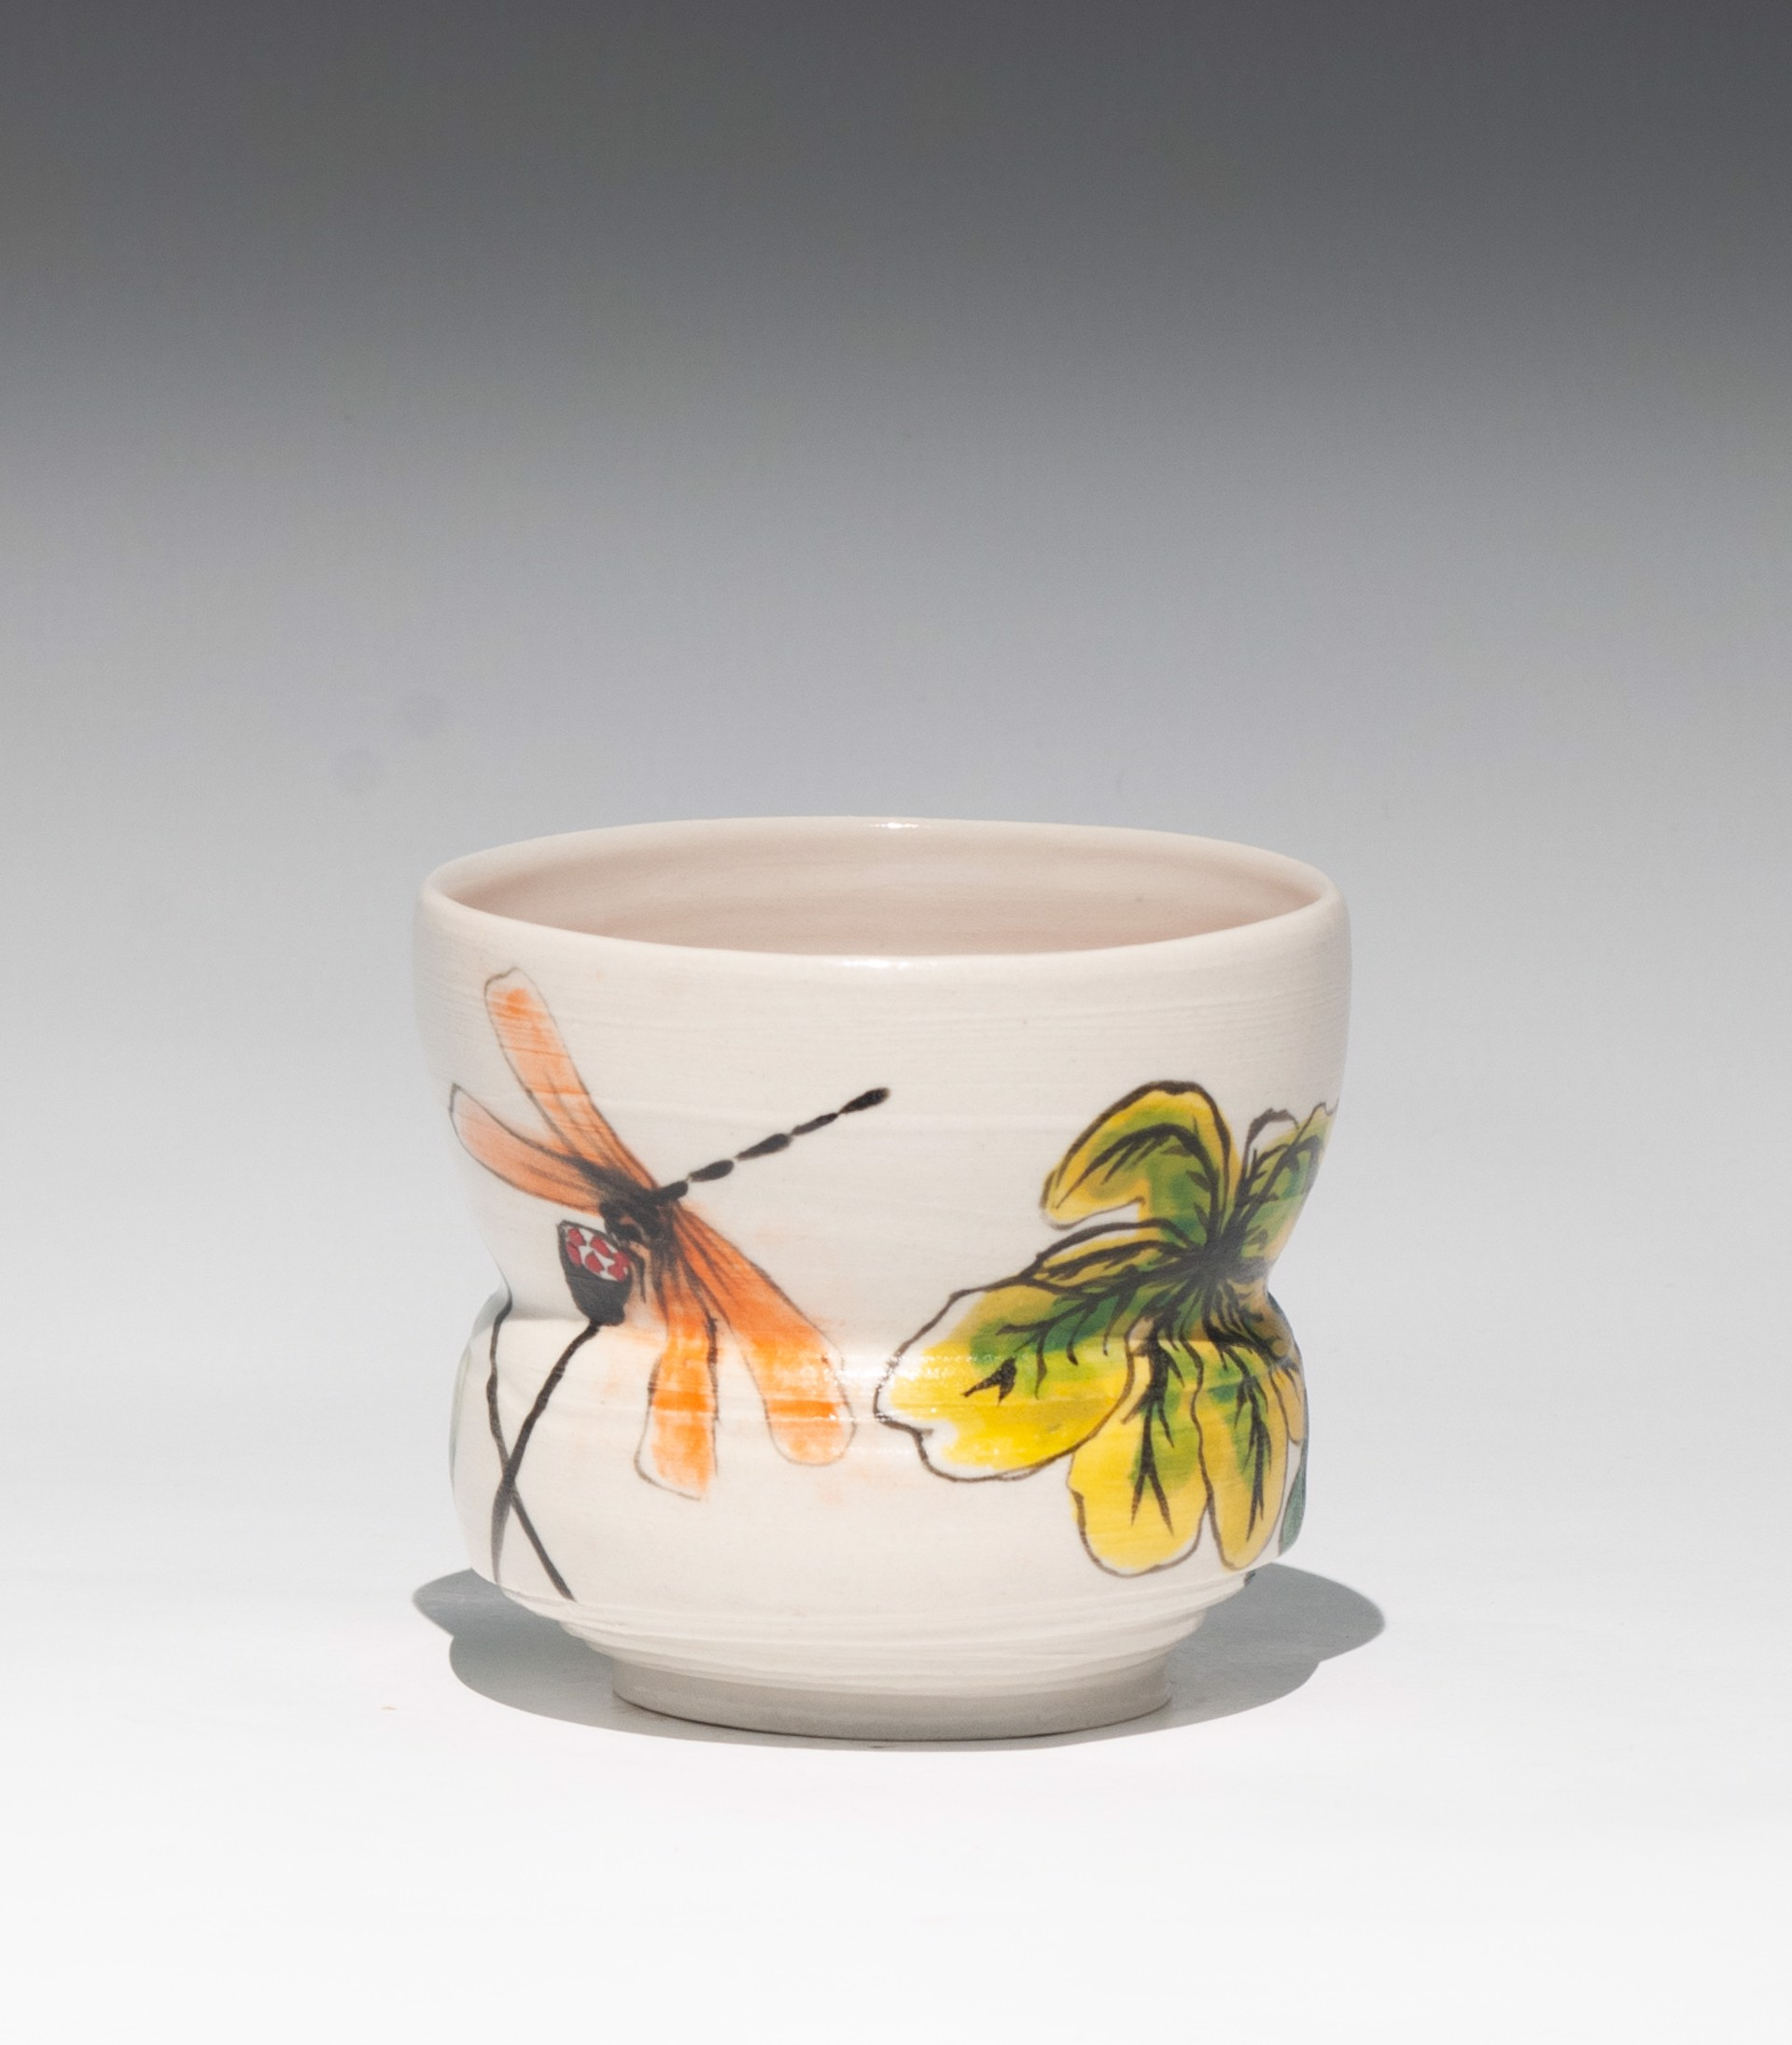 Insect Tea Bowl 12 by Caroline Bottom Anderson